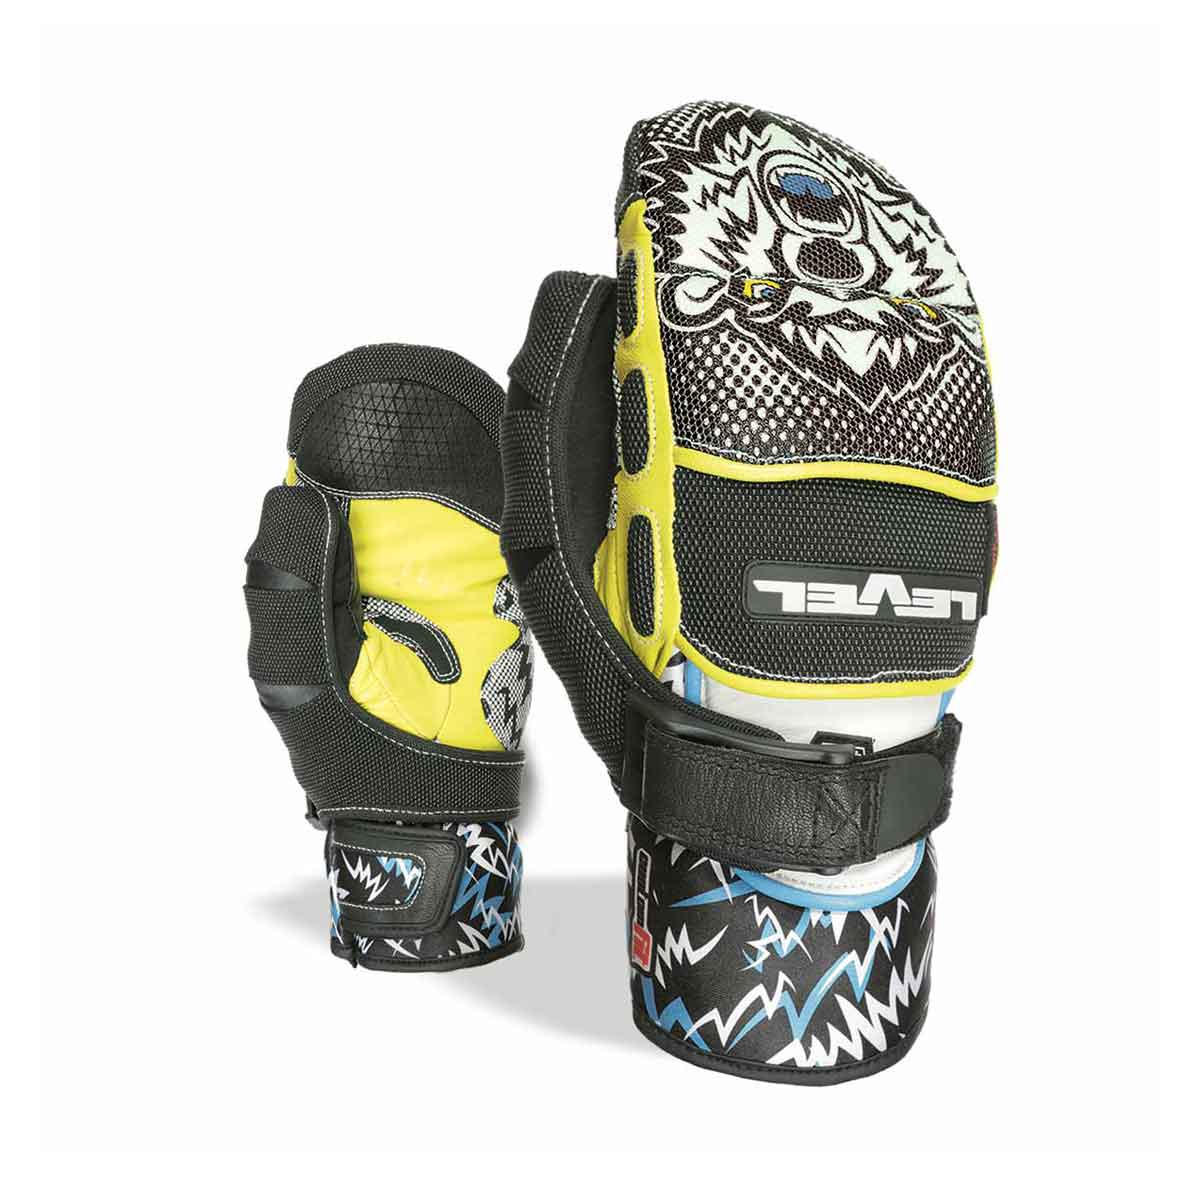 LEVEL Ski Thumb Protector / UCL Guard